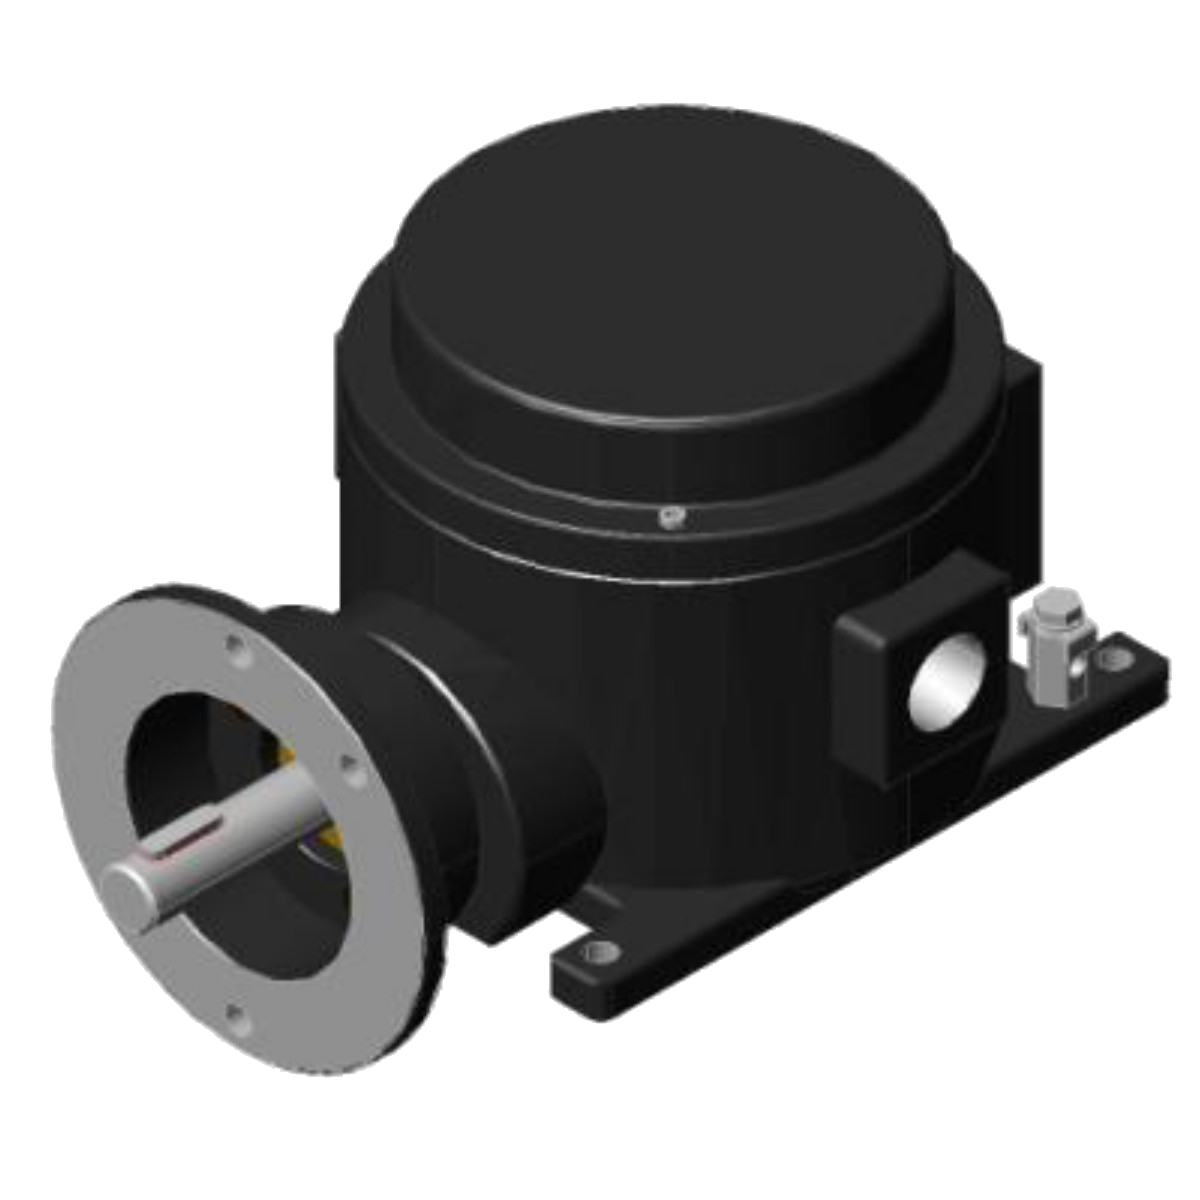 Rotary Limit Switches For Hazardous Areas